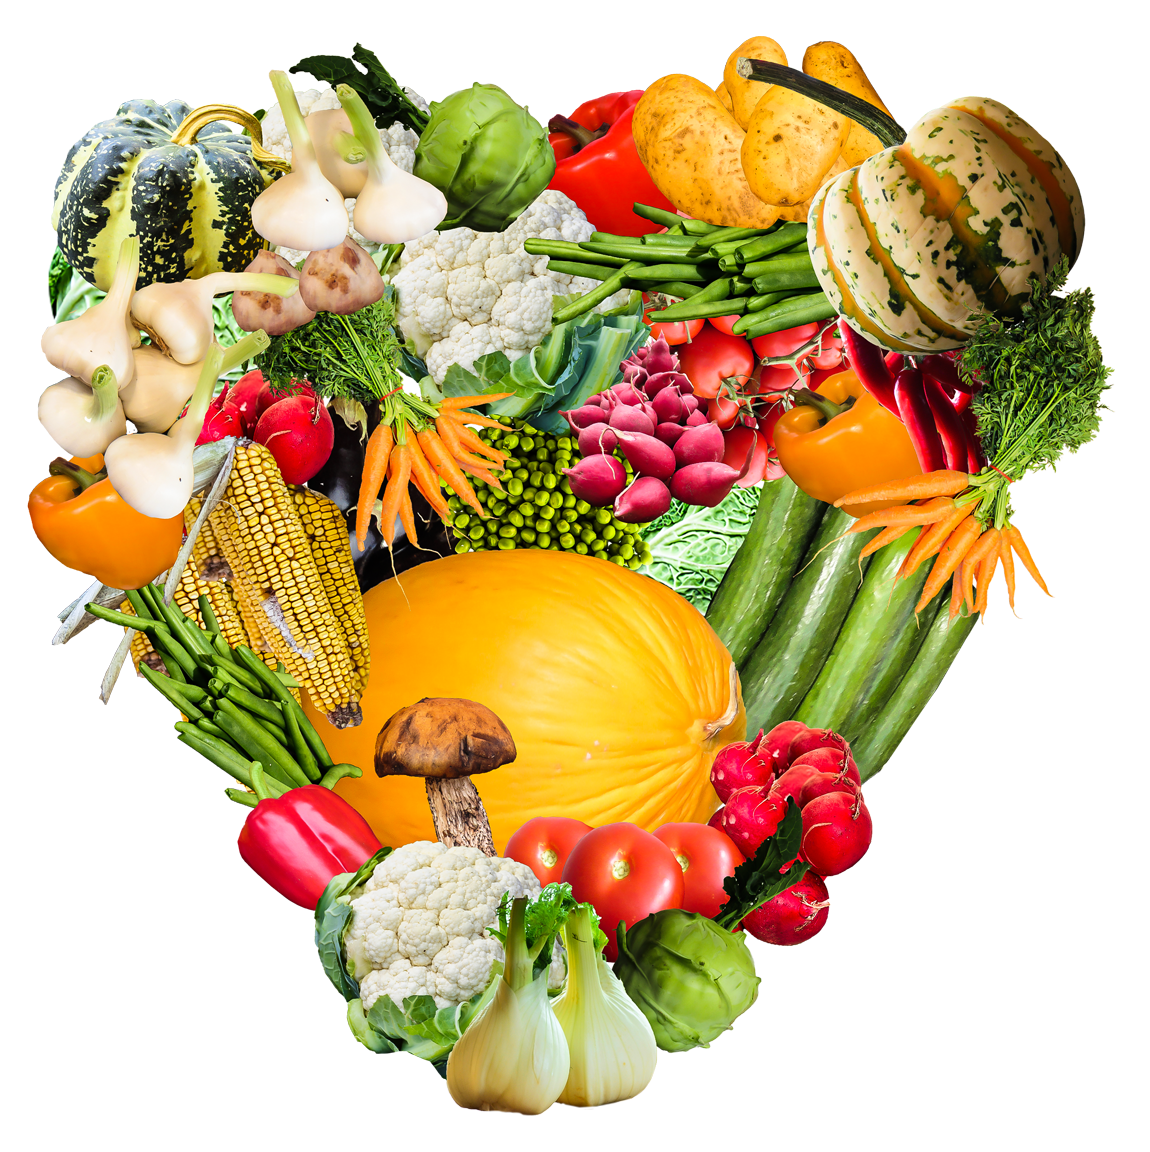 Vegetable PNG - 20361